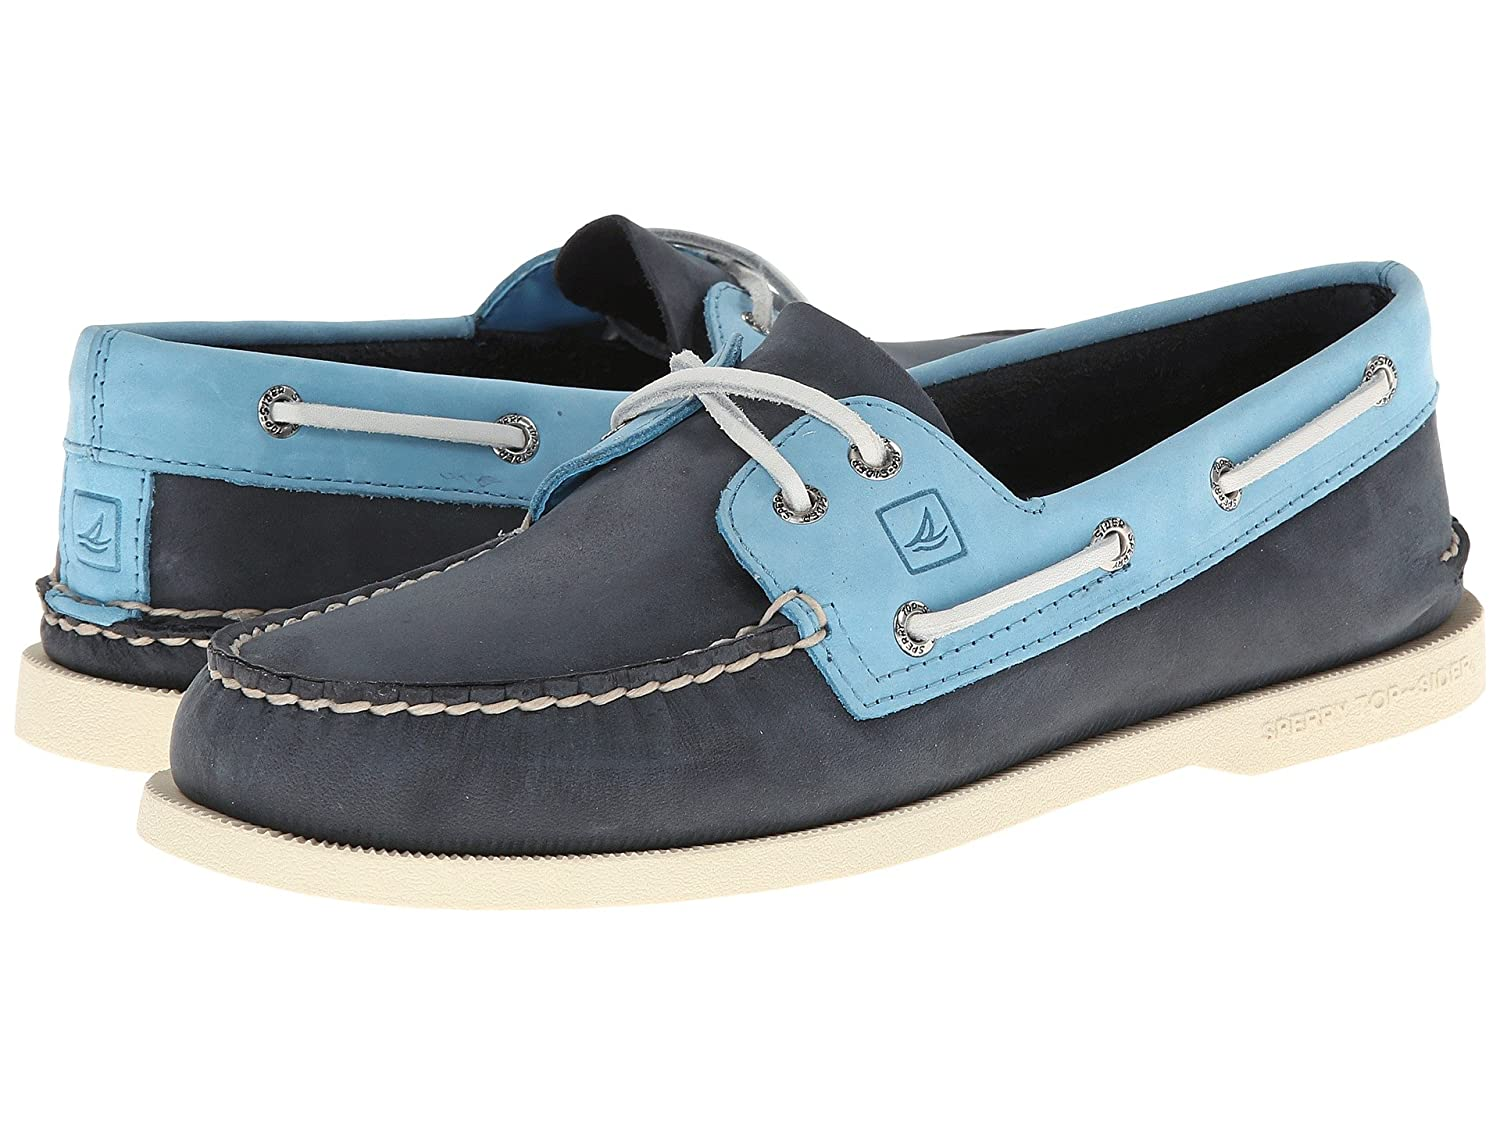 Two Tone Blue Boat Shoes